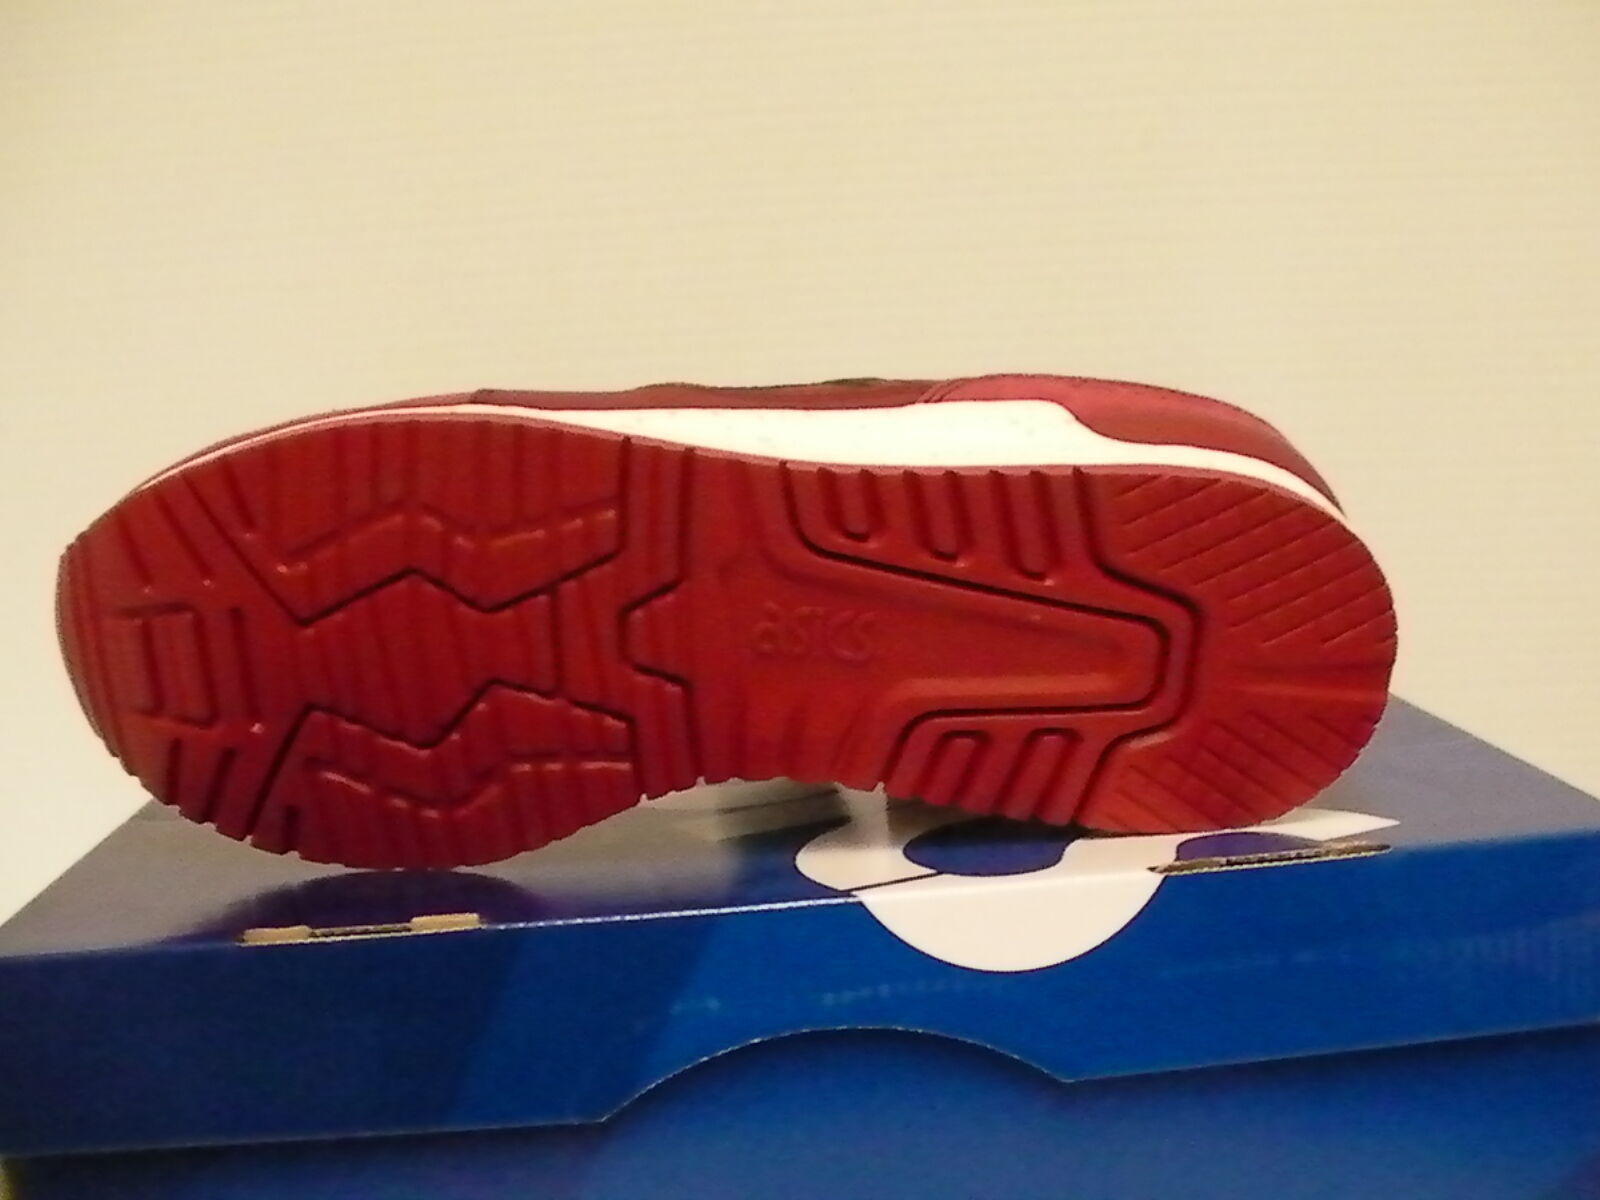 Course Us 8 Gel Asics Taille Chaussures Iii Lyte 70nYnO6